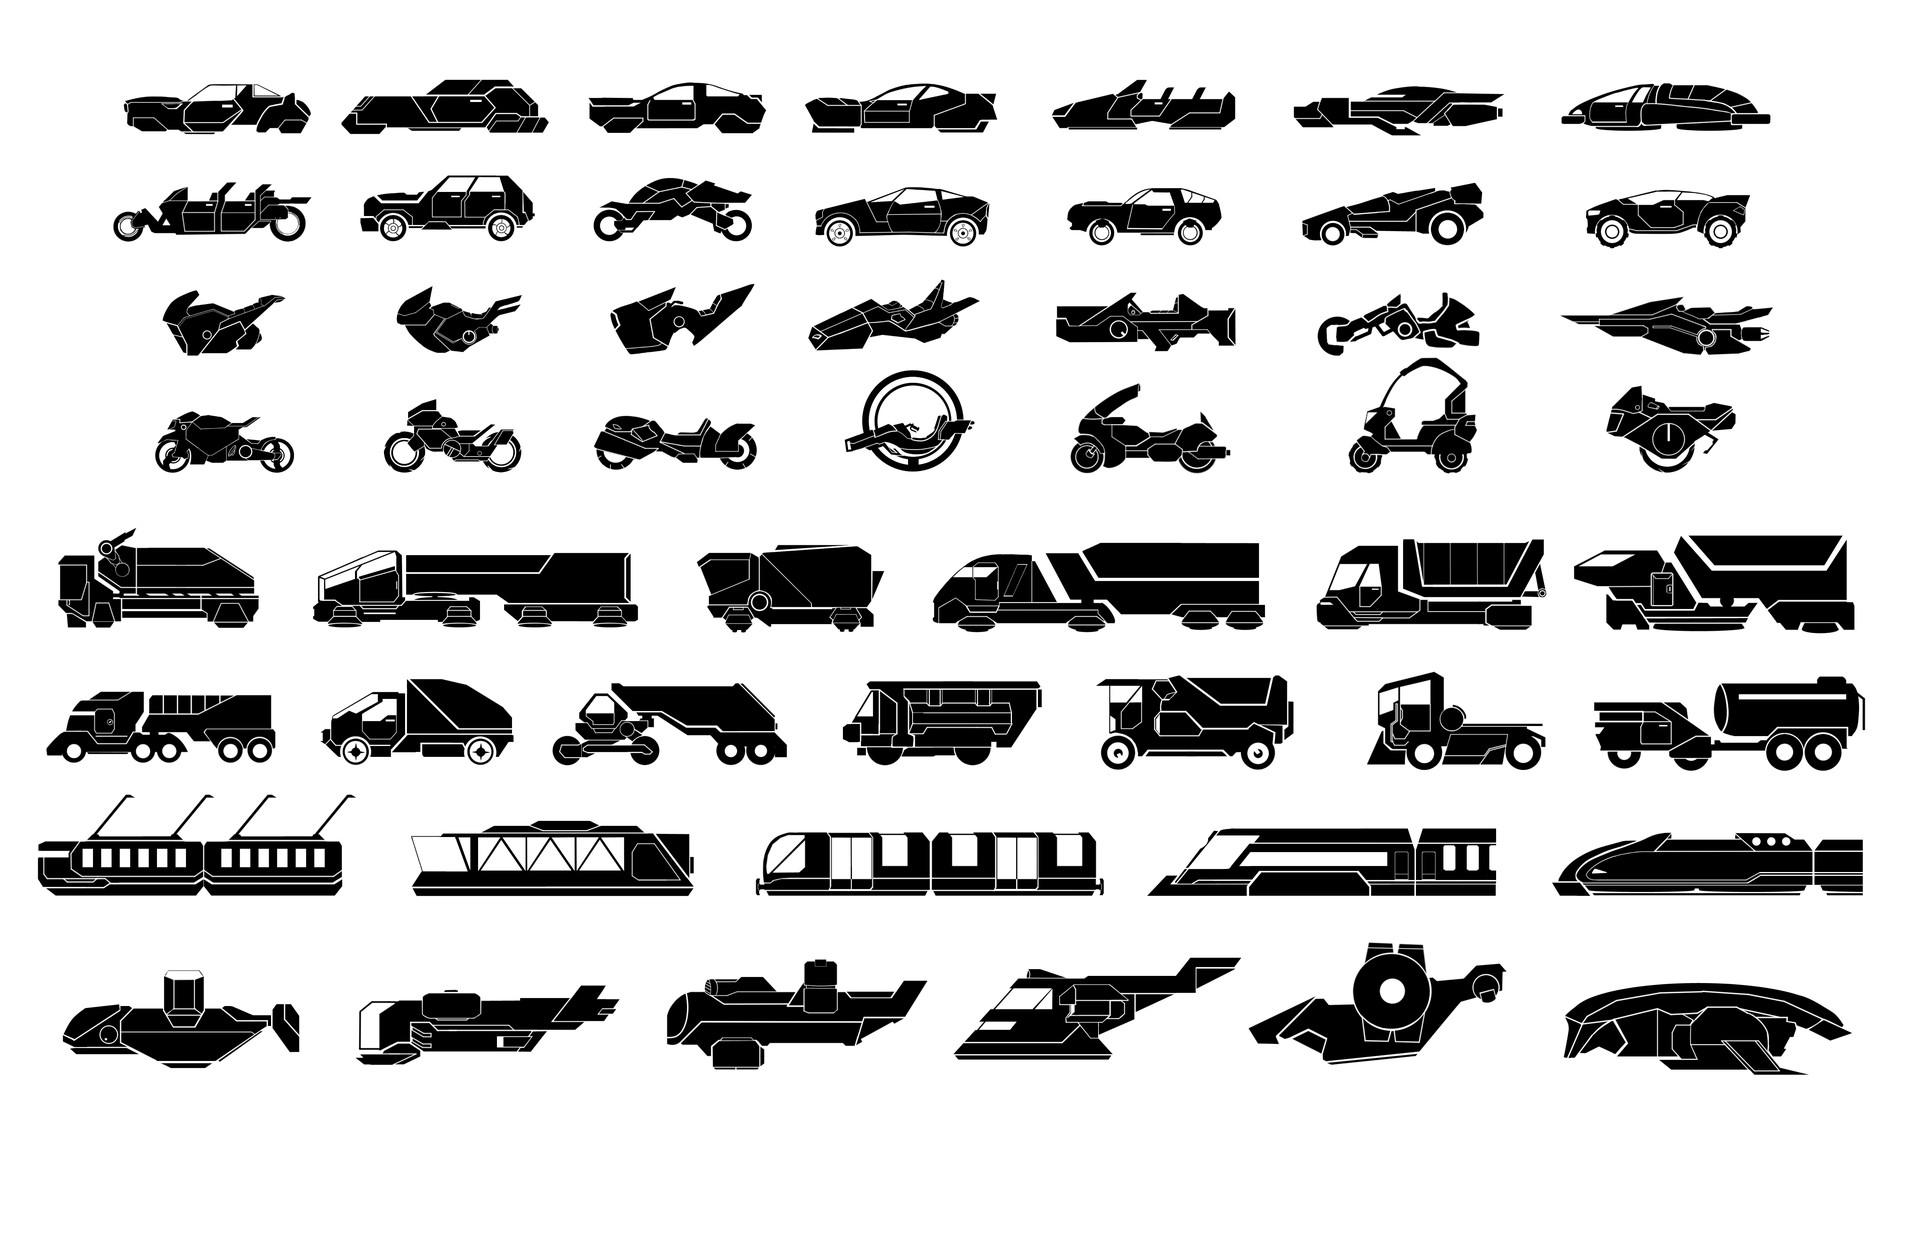 Lawrence patrick patchen iii vehicle silhouettes pg